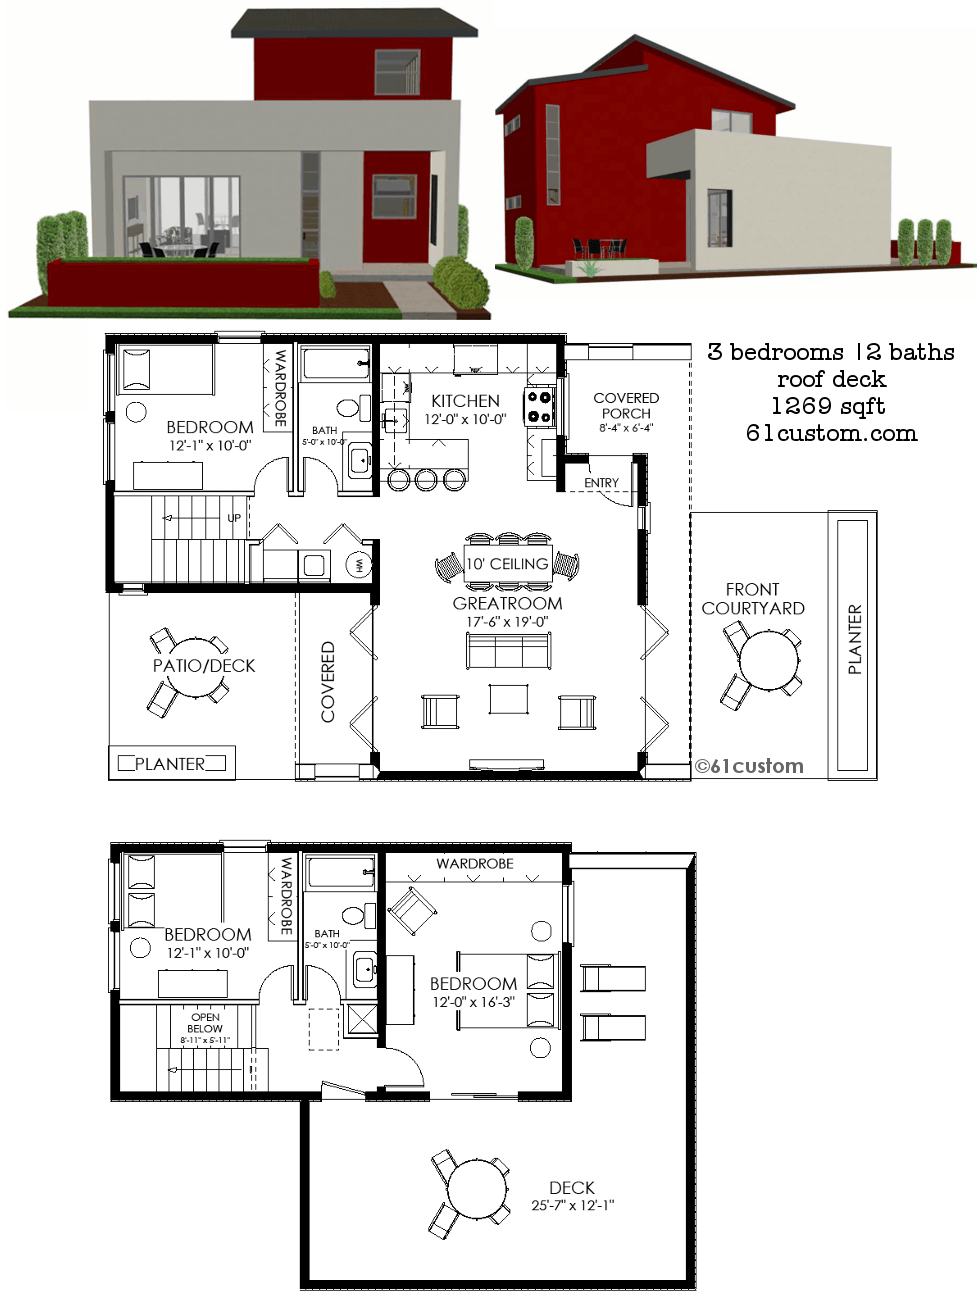 Contemporary small house plan 61custom contemporary Contemporary house blueprints